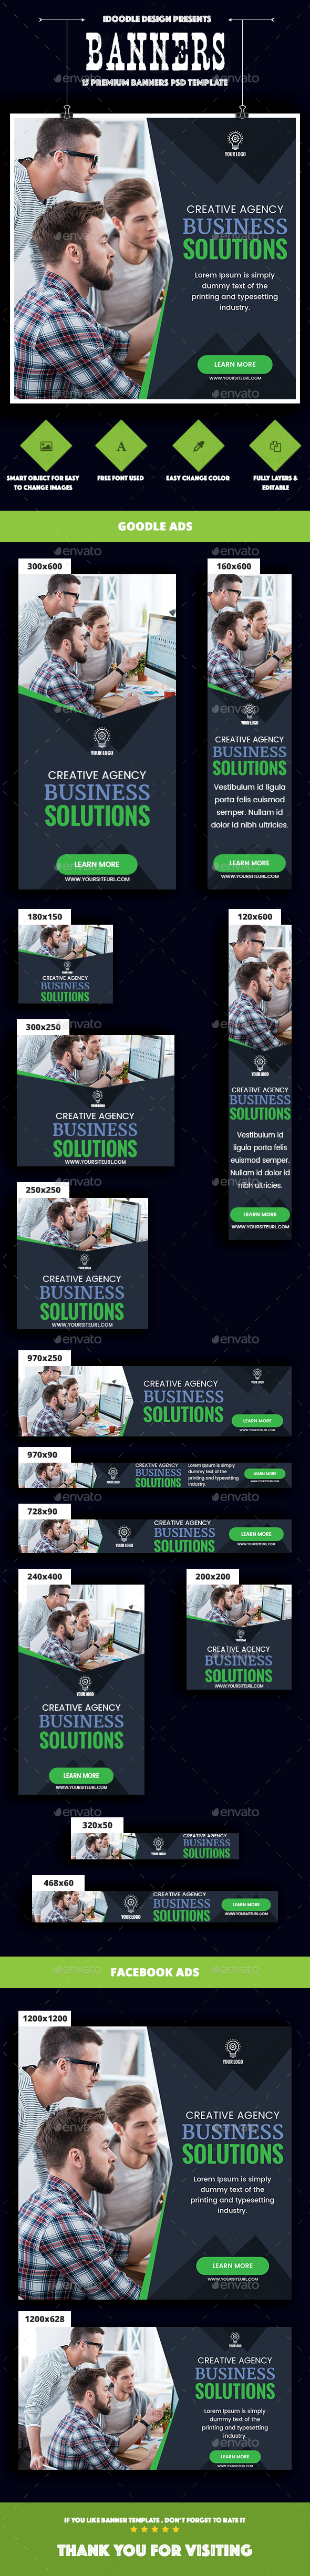 Multipurpose, Corporate, Business Banners Ads - Banners & Ads Web Elements